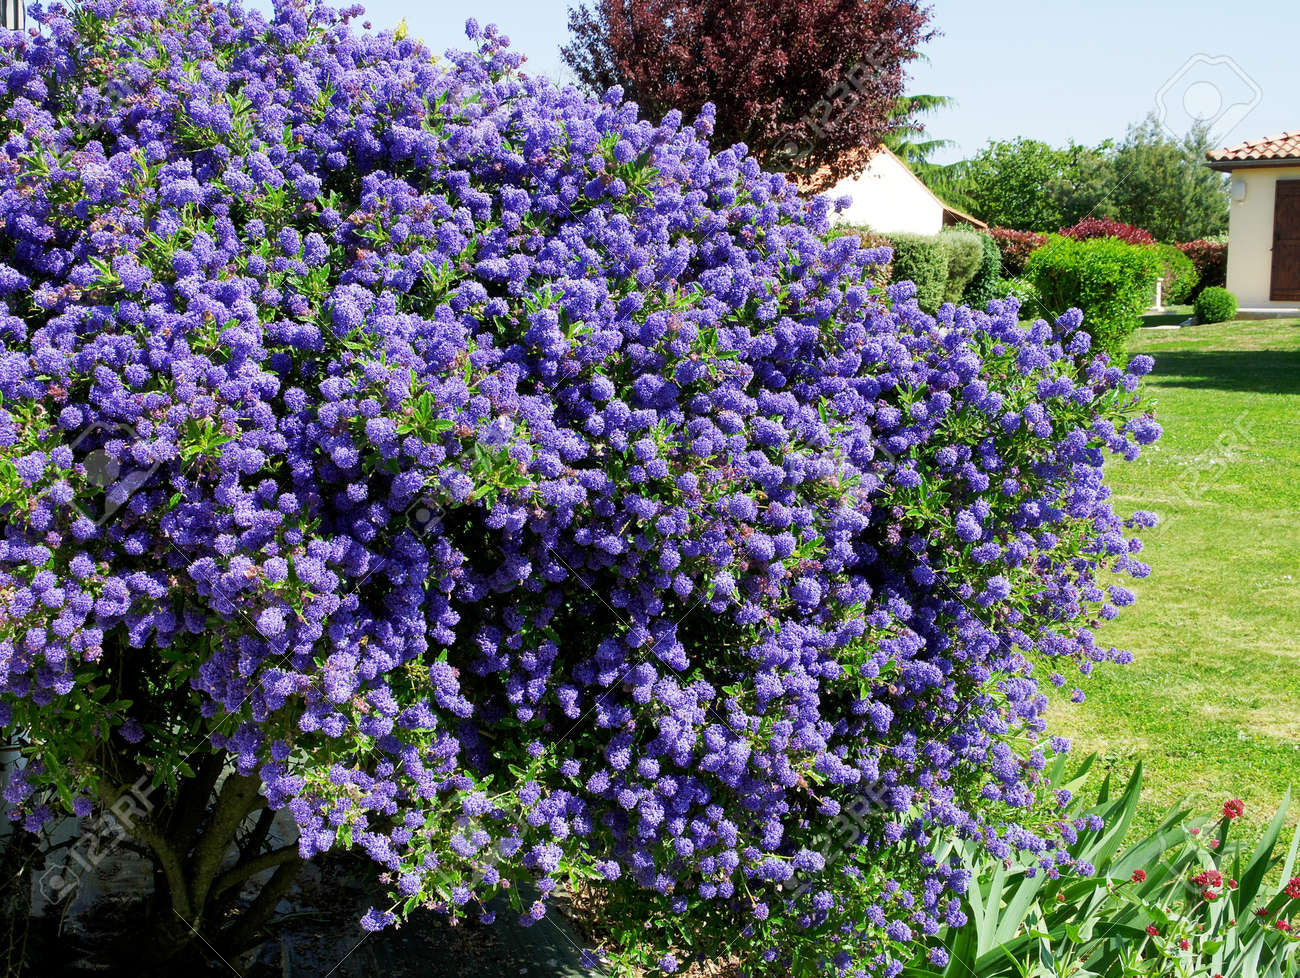 Bush Of Blue Flowers In A Garden Stock Photo Picture And Royalty